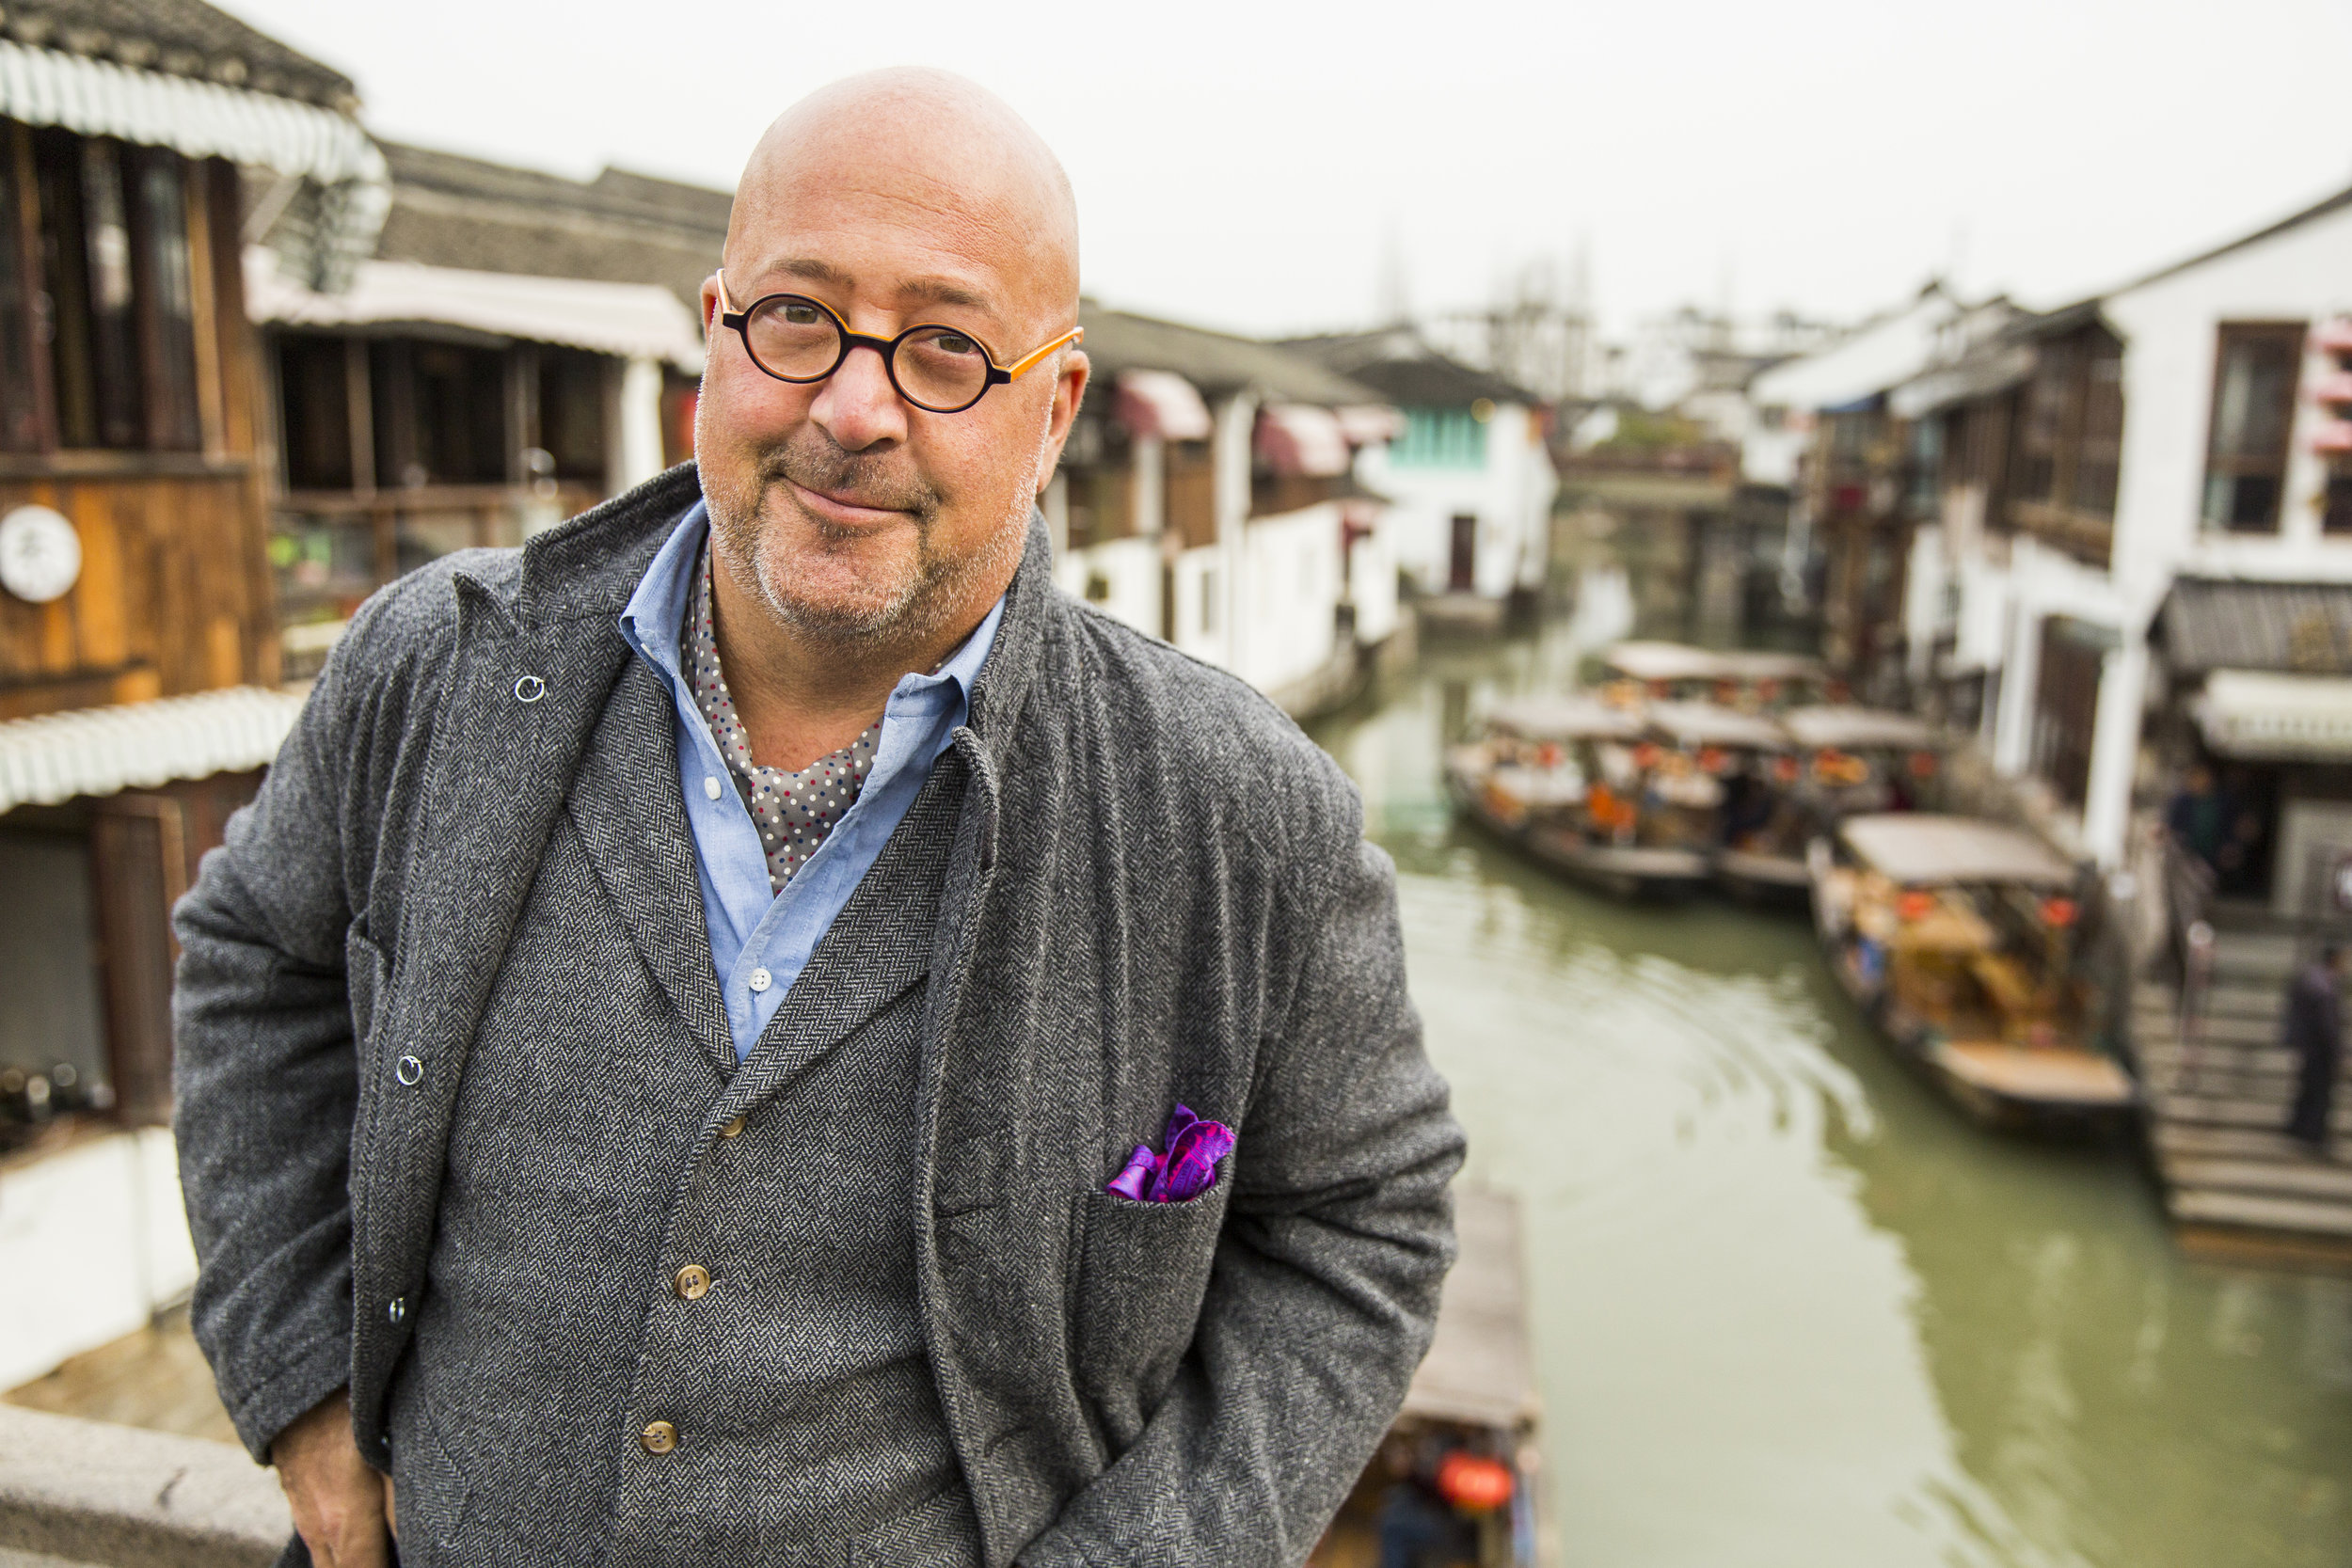 Andrew Zimmern - The smartest thing I've ever learned was this lesson on when to open your mouth: Ask yourself if it's true, does it need to be said, and if it's true and needs to be said is it up to me to say it.Sober since January 29, 1982